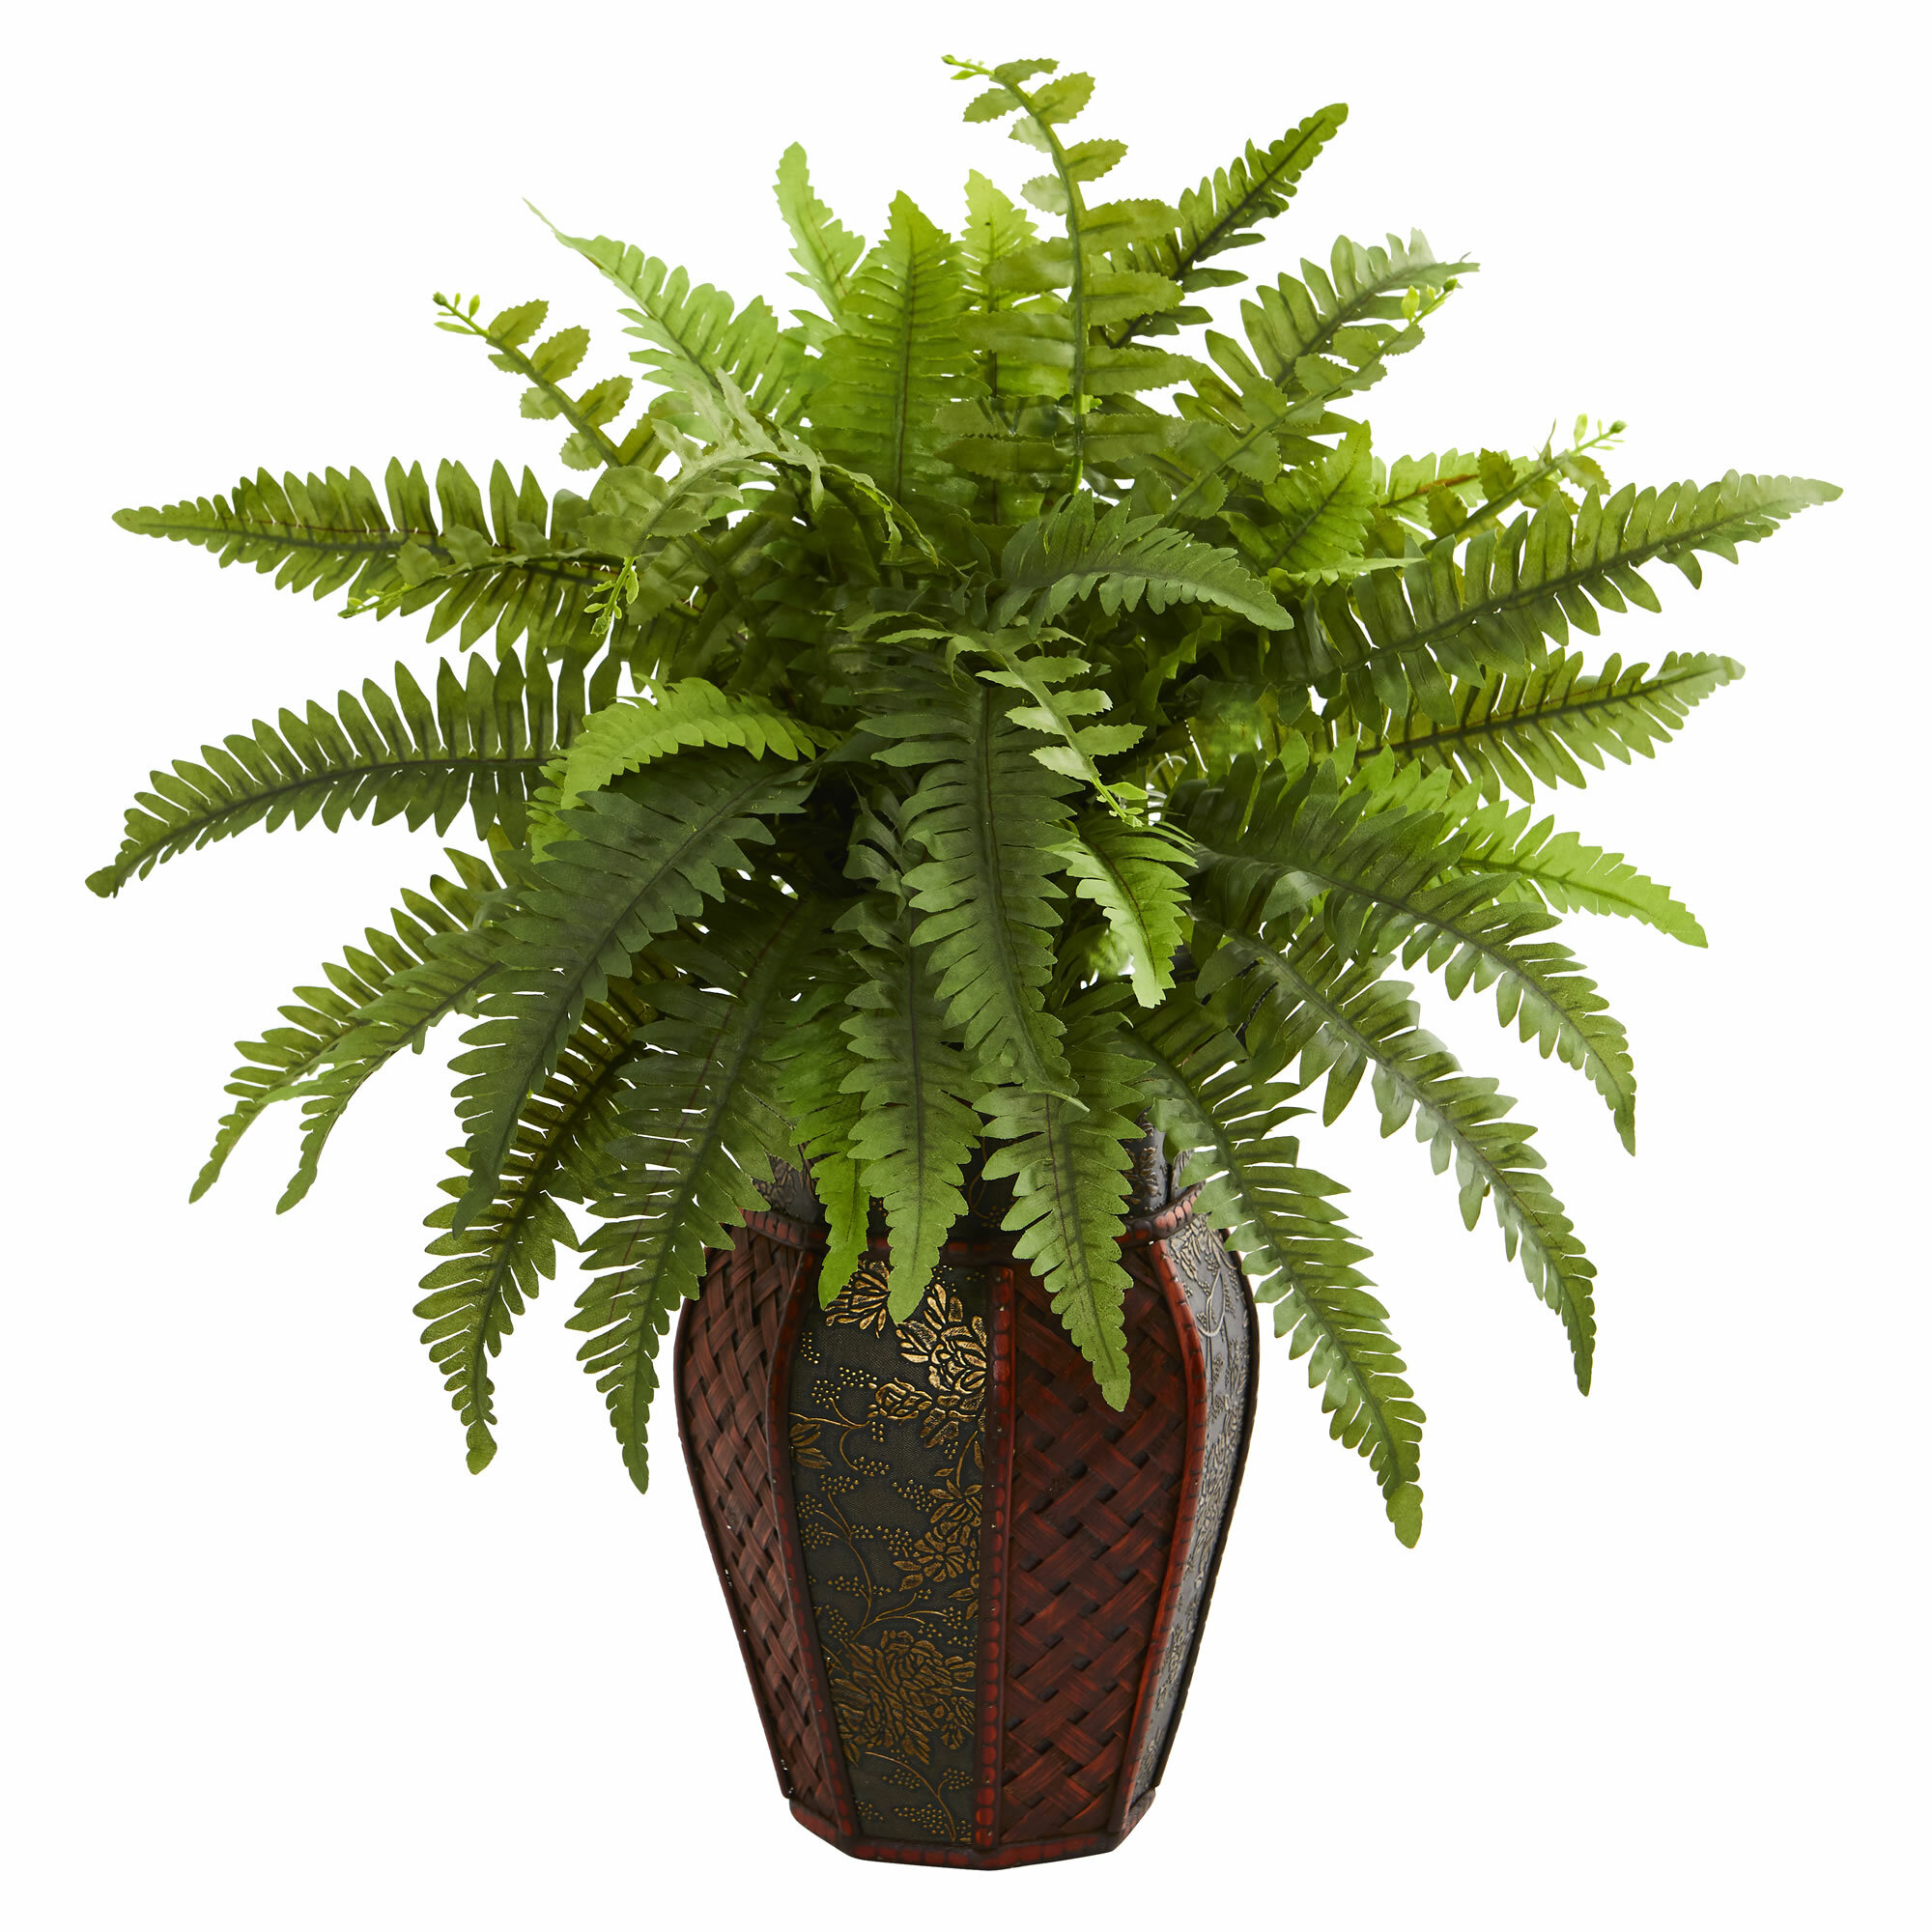 World Menagerie Boston Fern Desktop Foliage Plant In Decorative Decorative Vase Wayfair